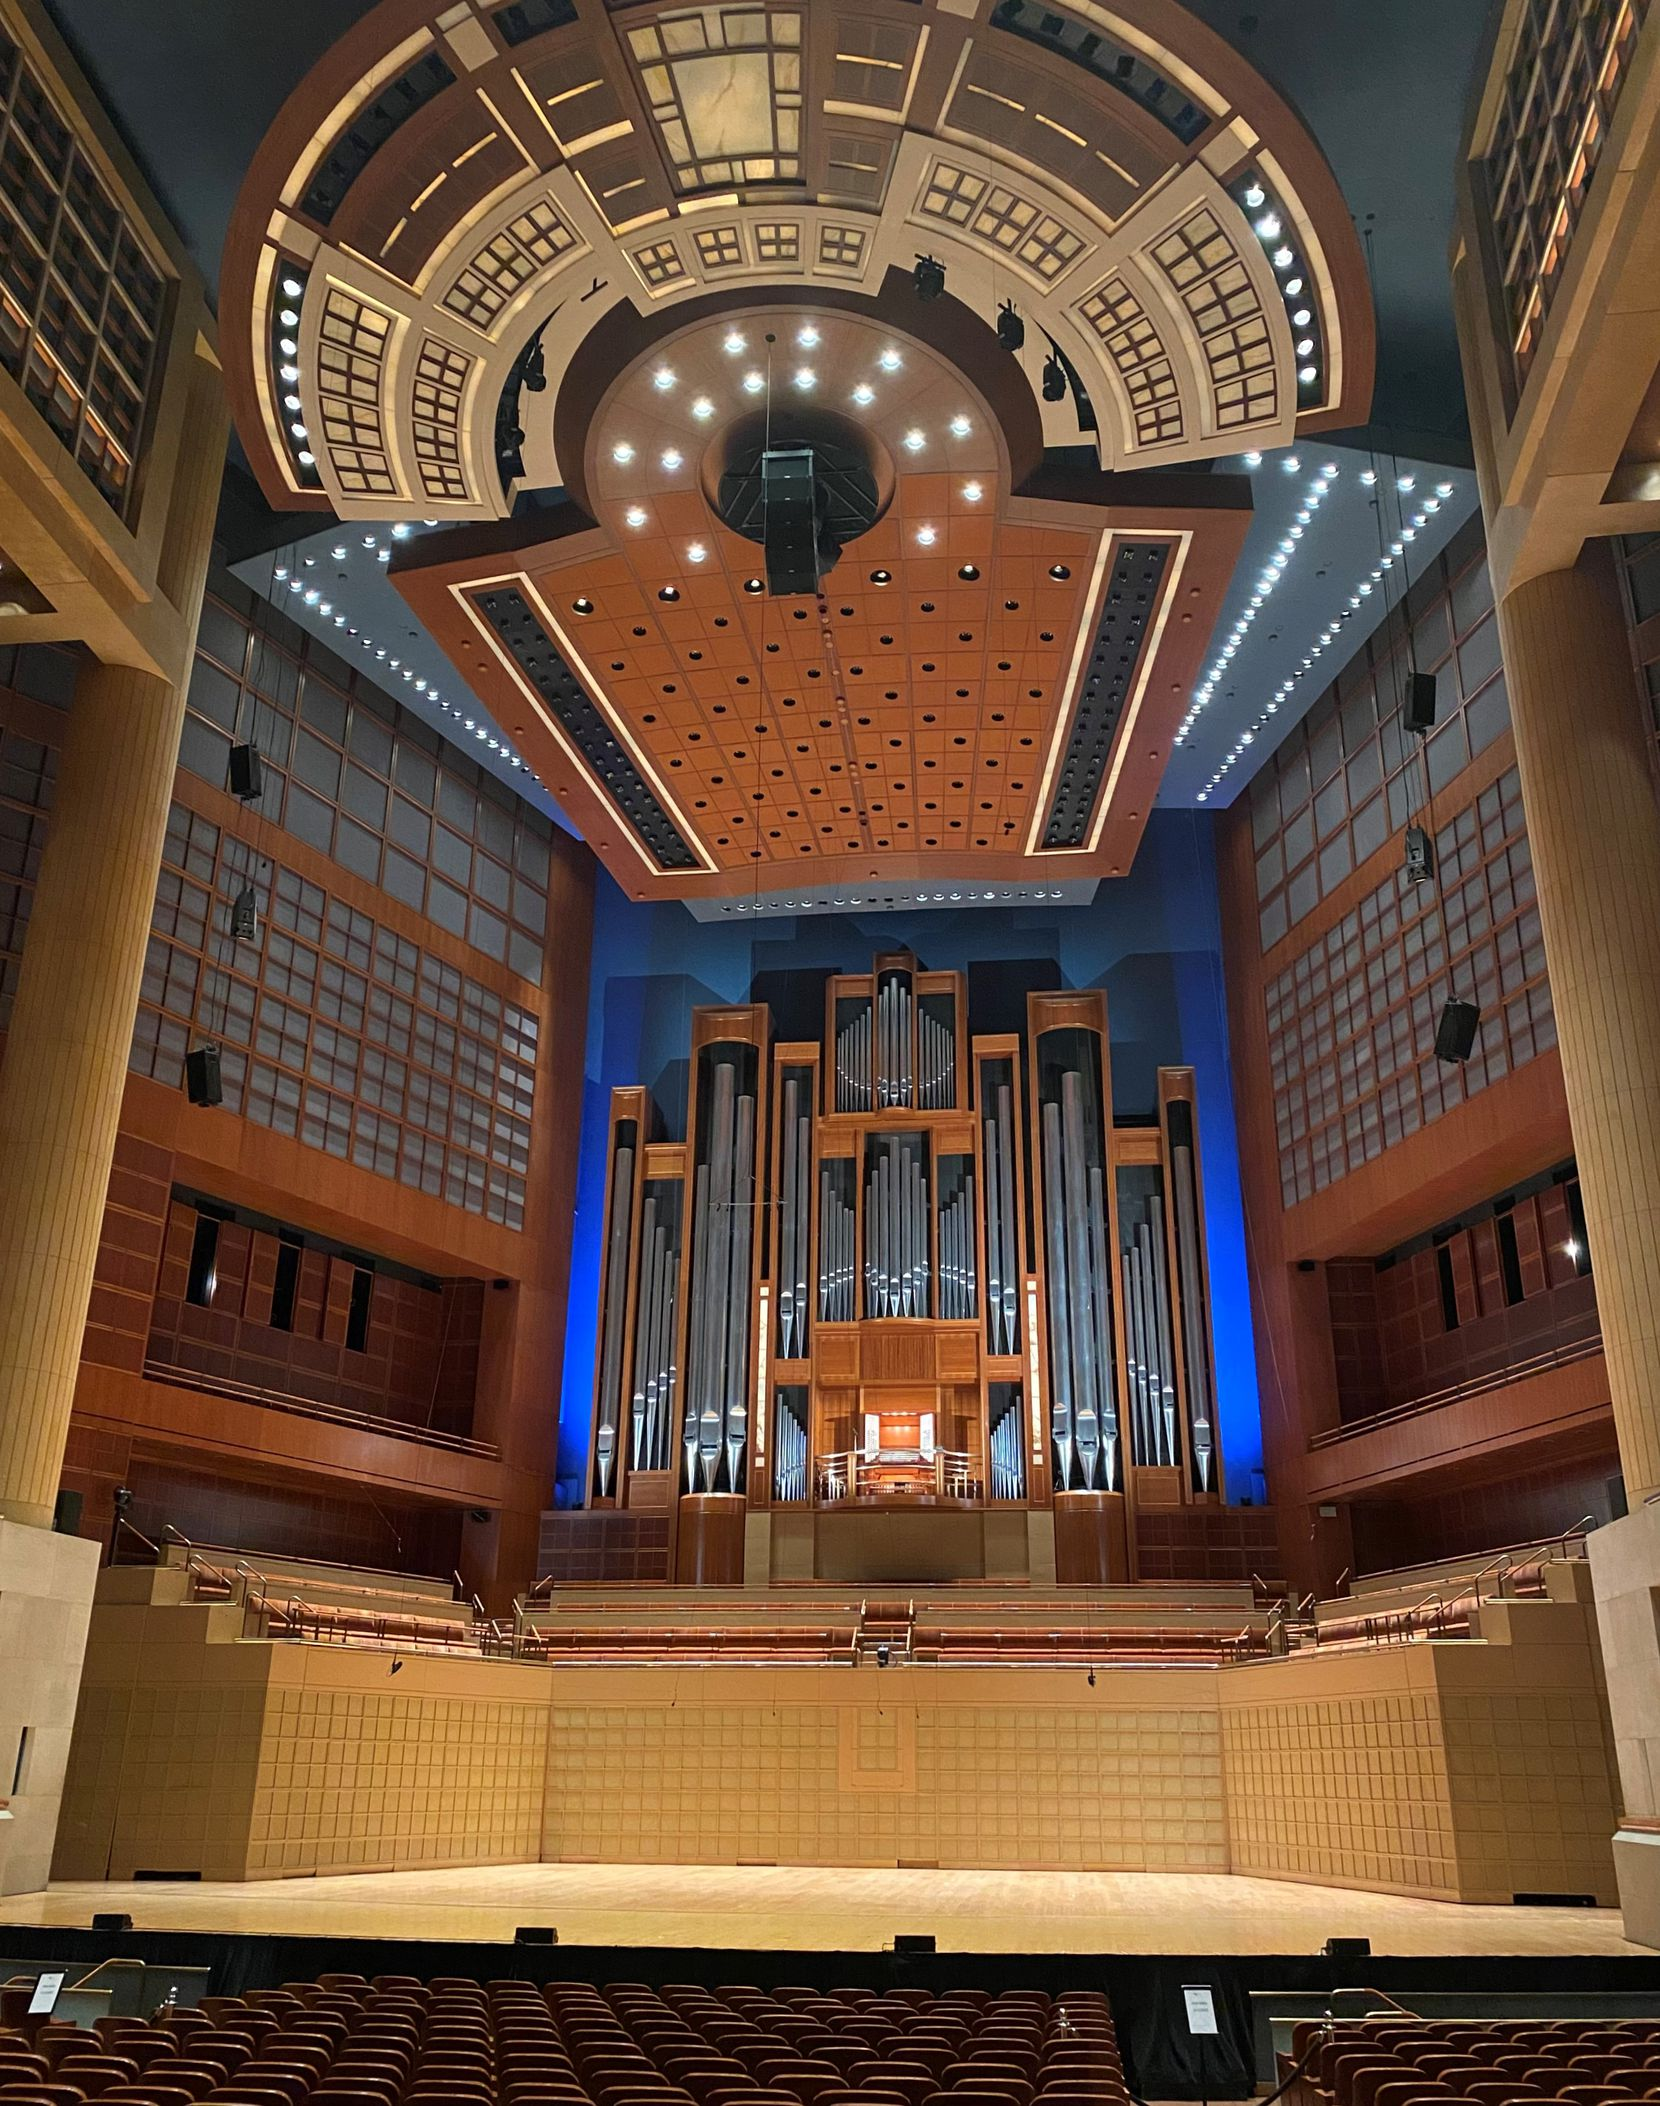 The Lay Family Organ, by C.B. Fisk organ builders, in the Meyerson Symphony Center, Dallas